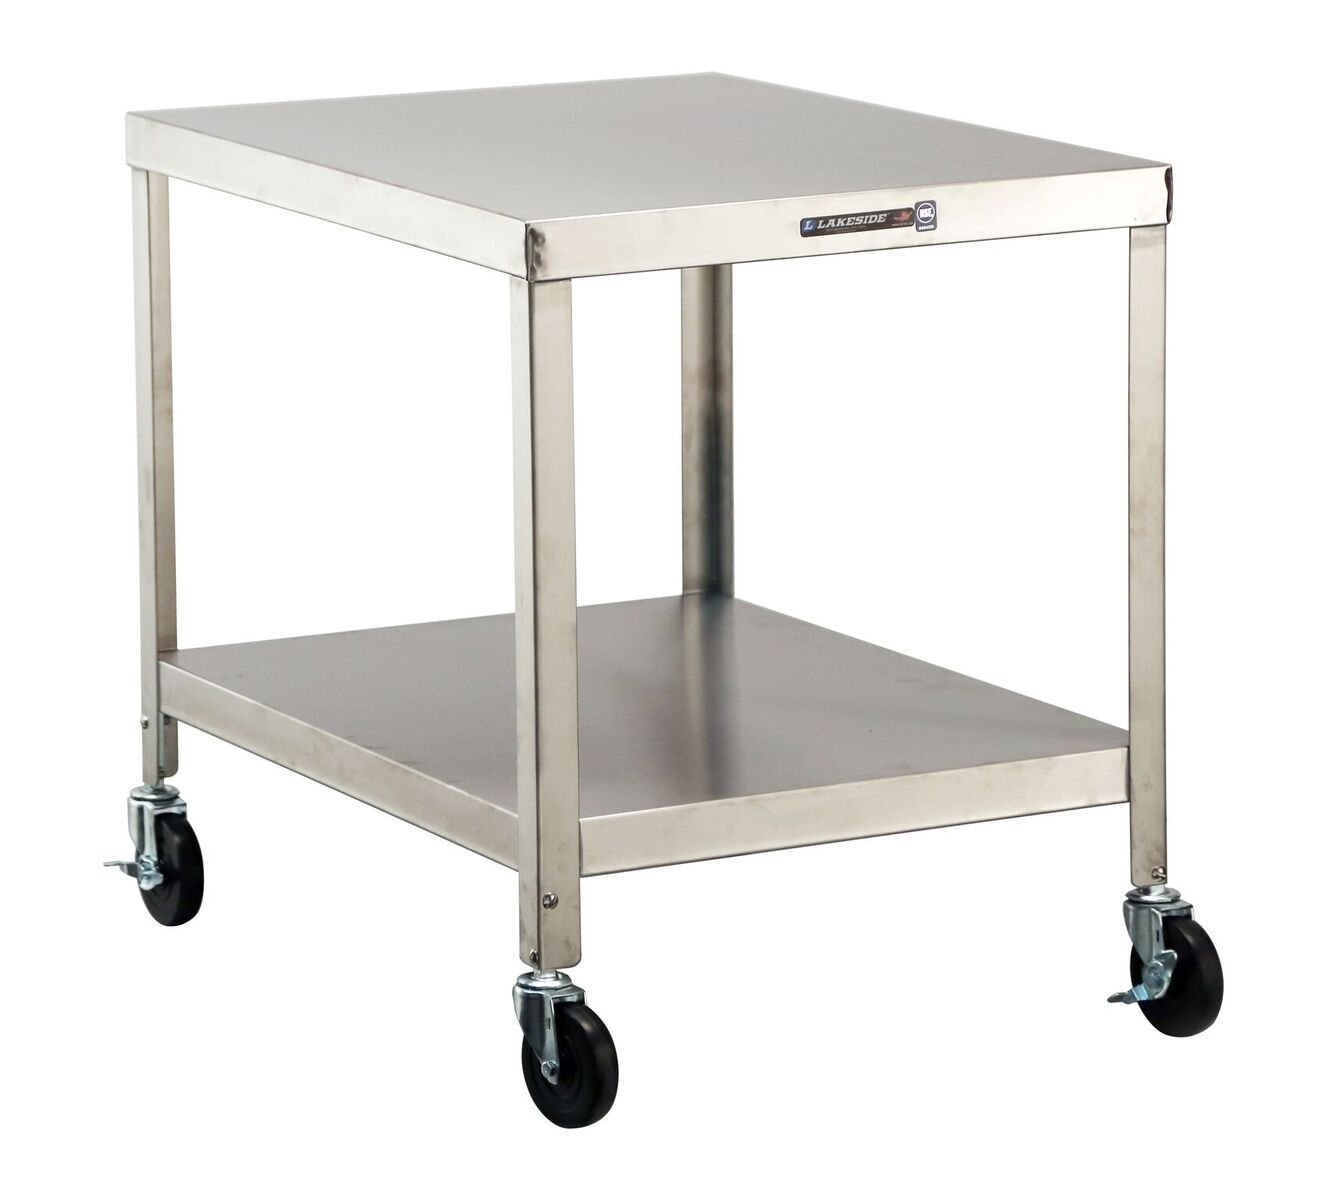 Lakeside 518 NSF-Mobile Machine Stand, Stainless Steel, 2 Shelves, 29.18'' Height, 33.25'' width, 33.25'' Length